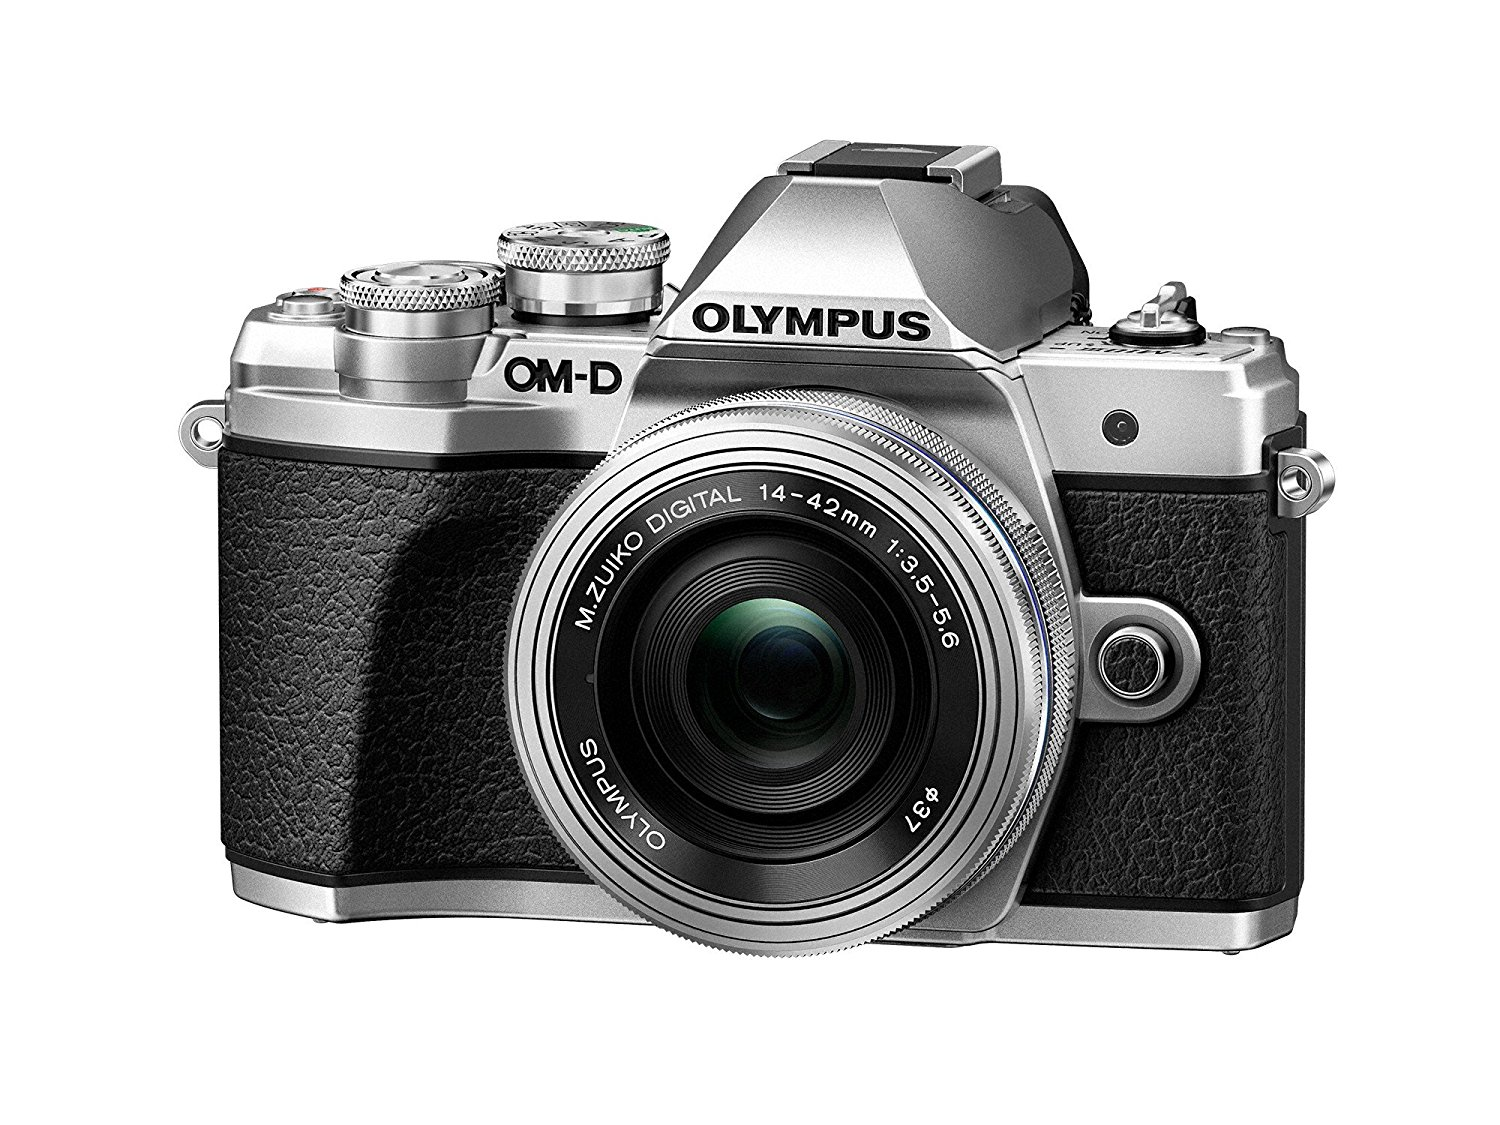 Olympus OM-D E-M10 Mark III camera kit with 14-42mm EZ ...